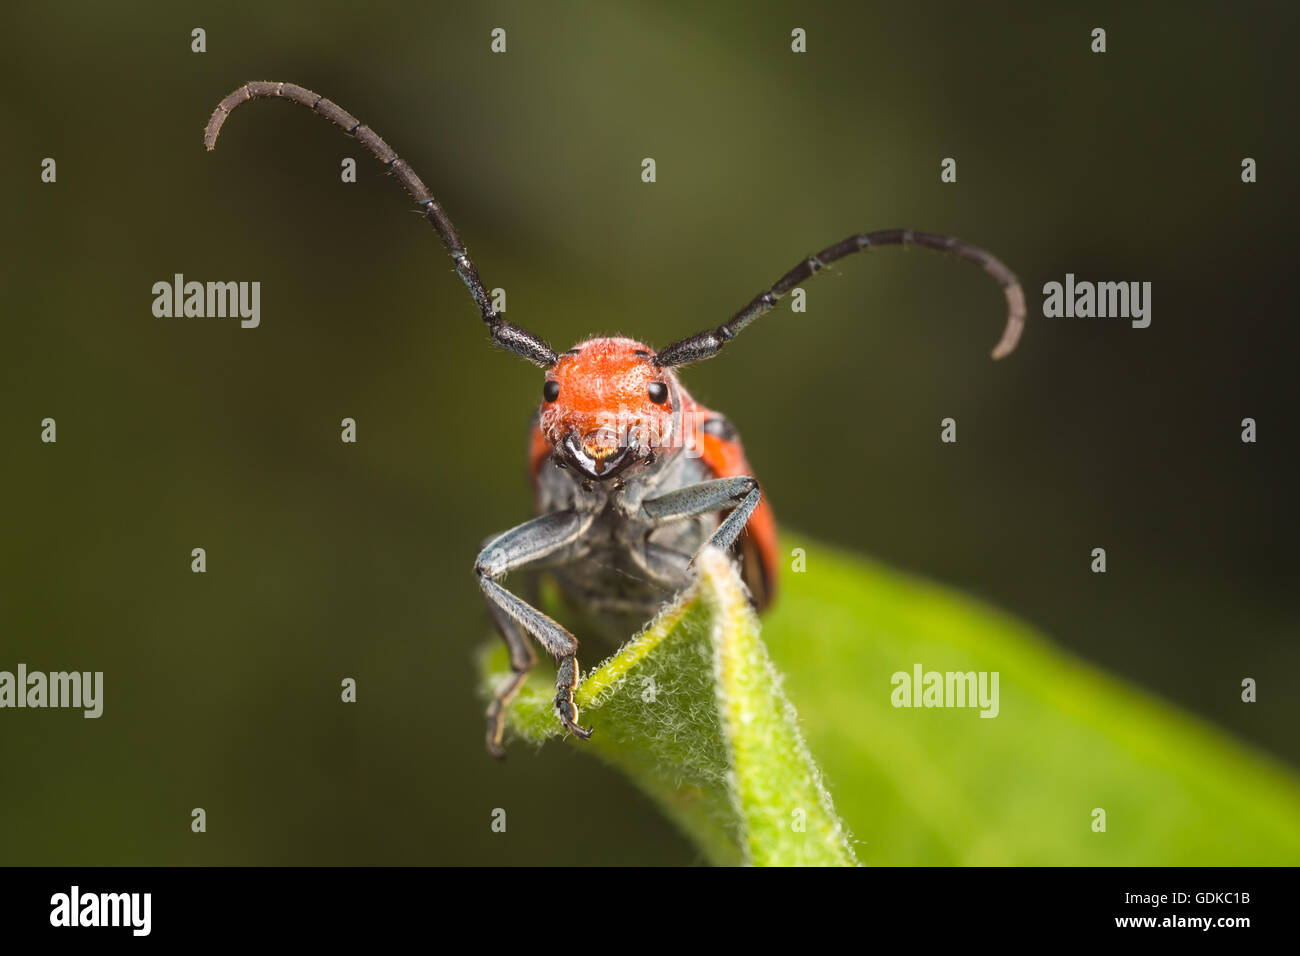 A frontal view of a Red Milkweed Beetle (Tetraopes tetrophthalmus) perching on a Common Milkweed plant leaf. - Stock Image